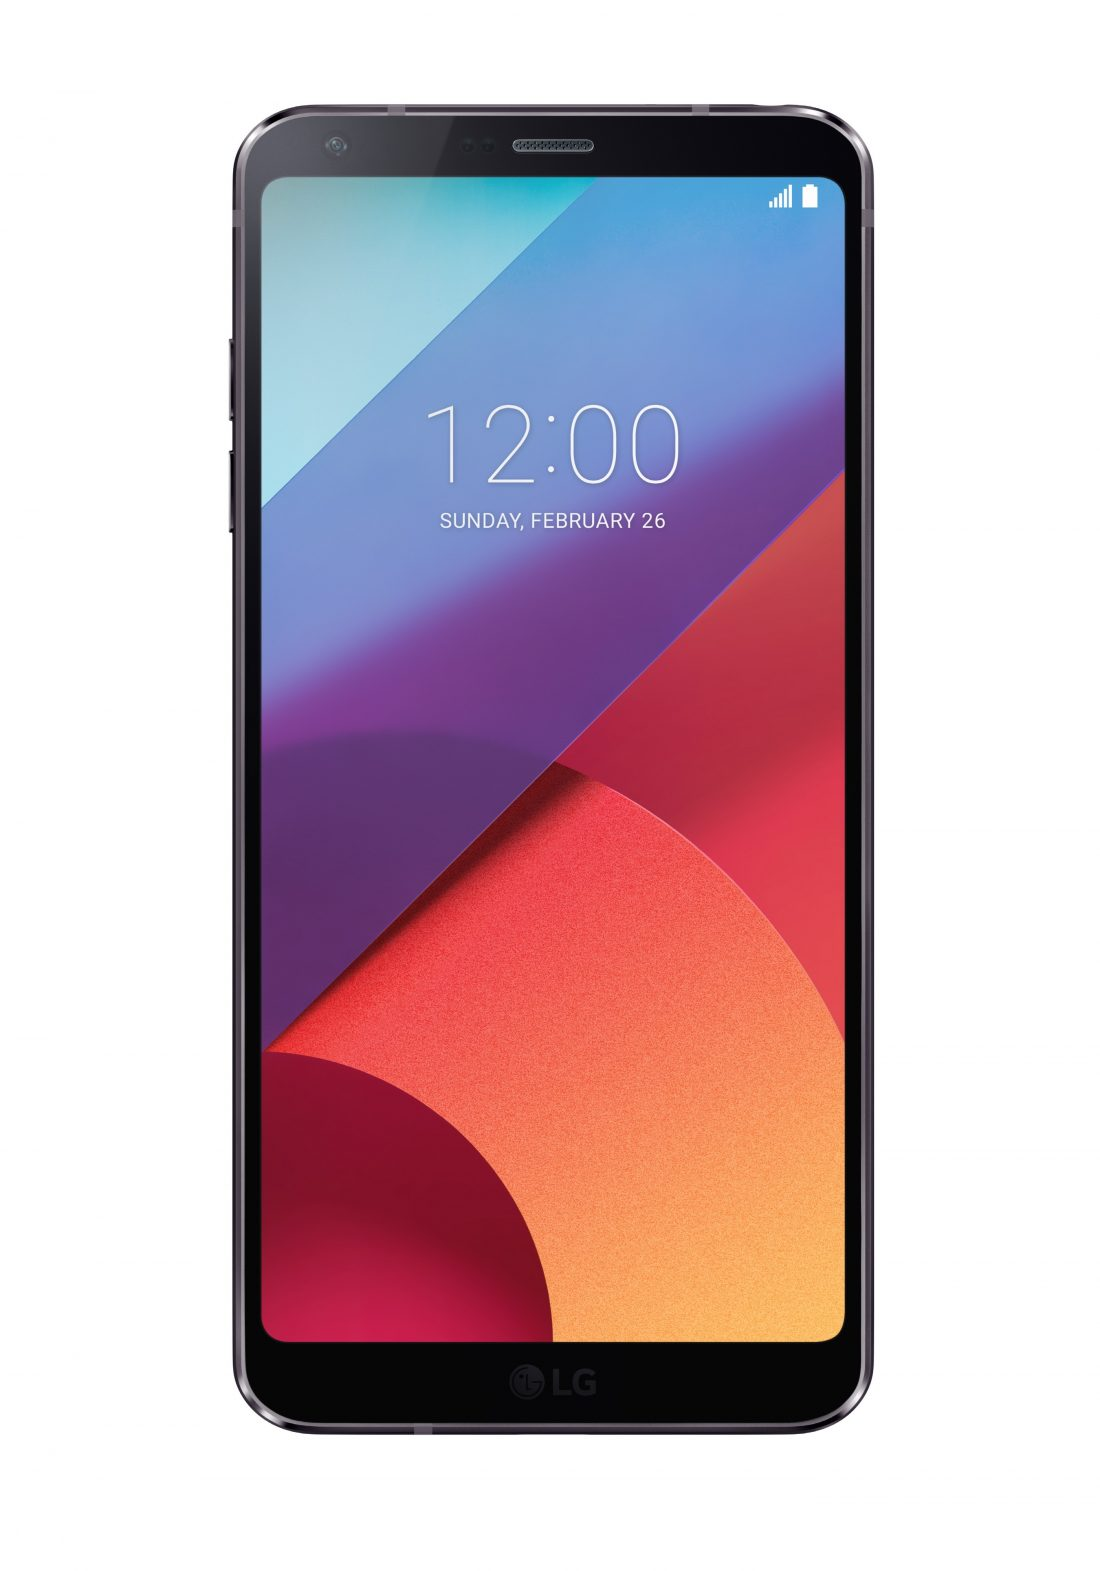 Front view of the LG G6 phone